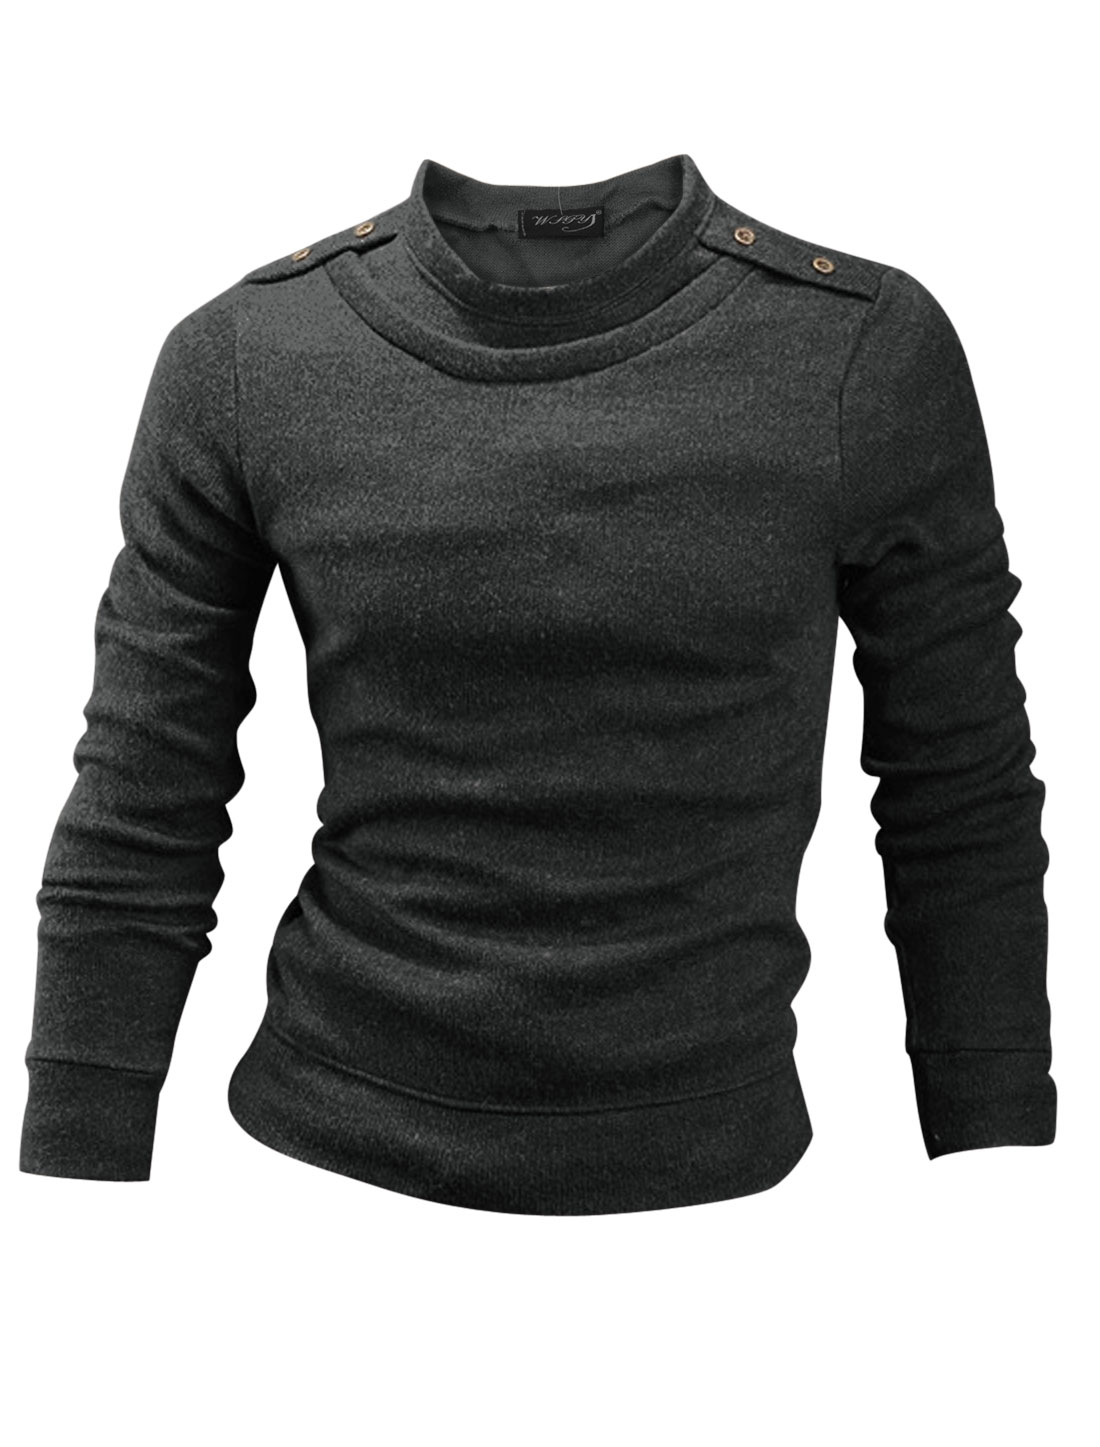 Men Cozy Fit Pullover Button Tab Shoulder Knit Shirt Dark Gray M